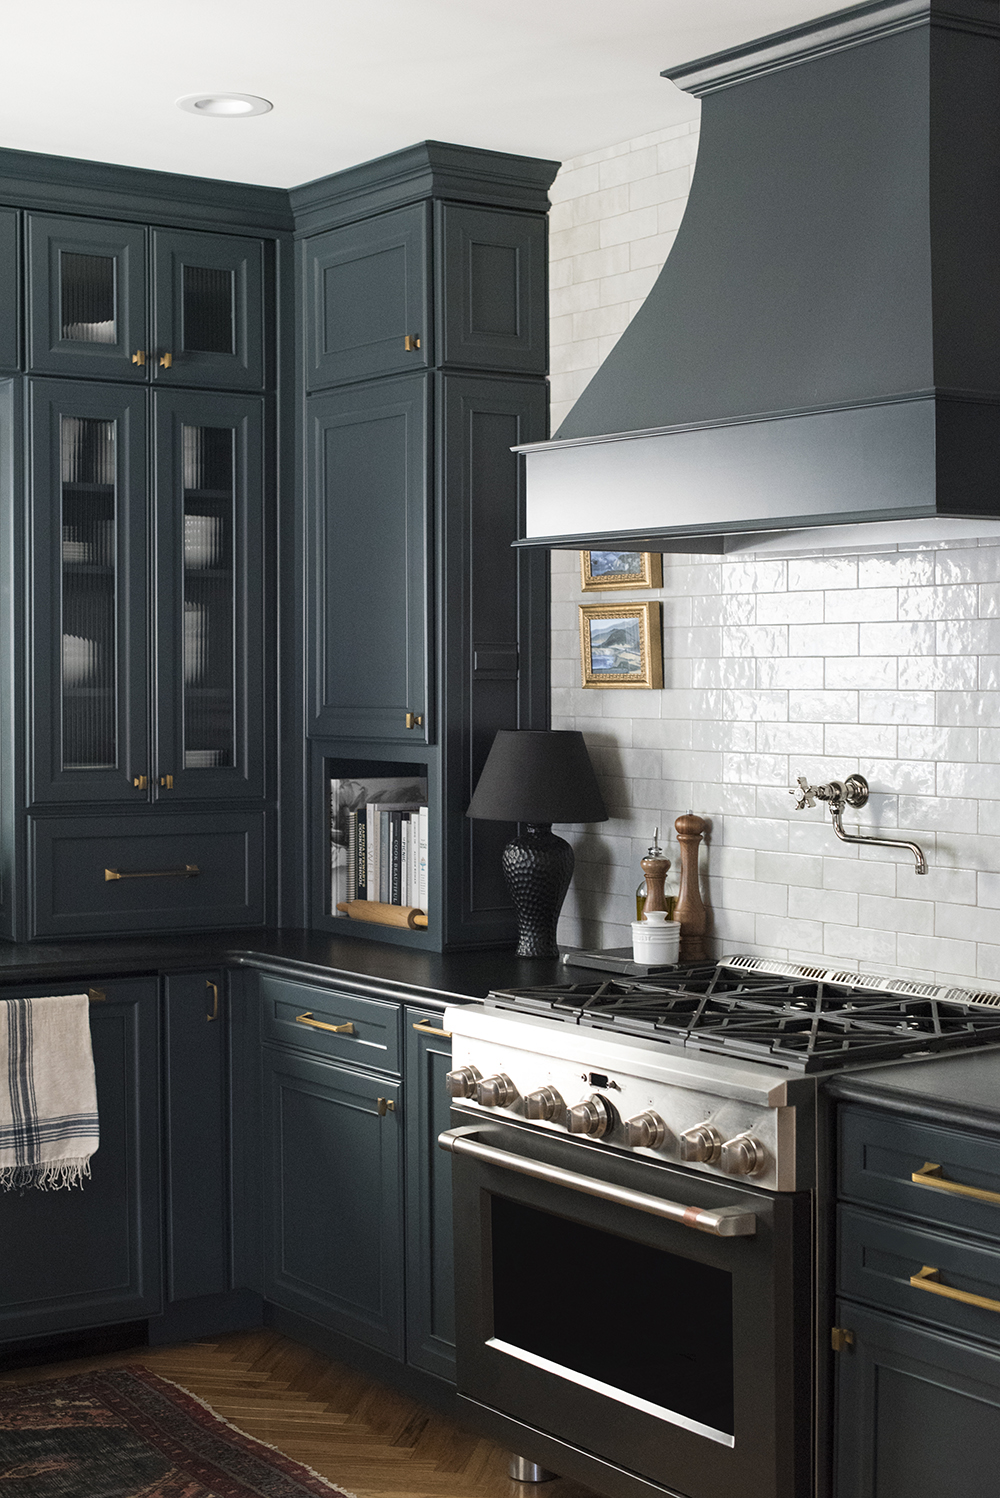 Roundup : Kitchen Countertop Lamps - roomfortuesday.com